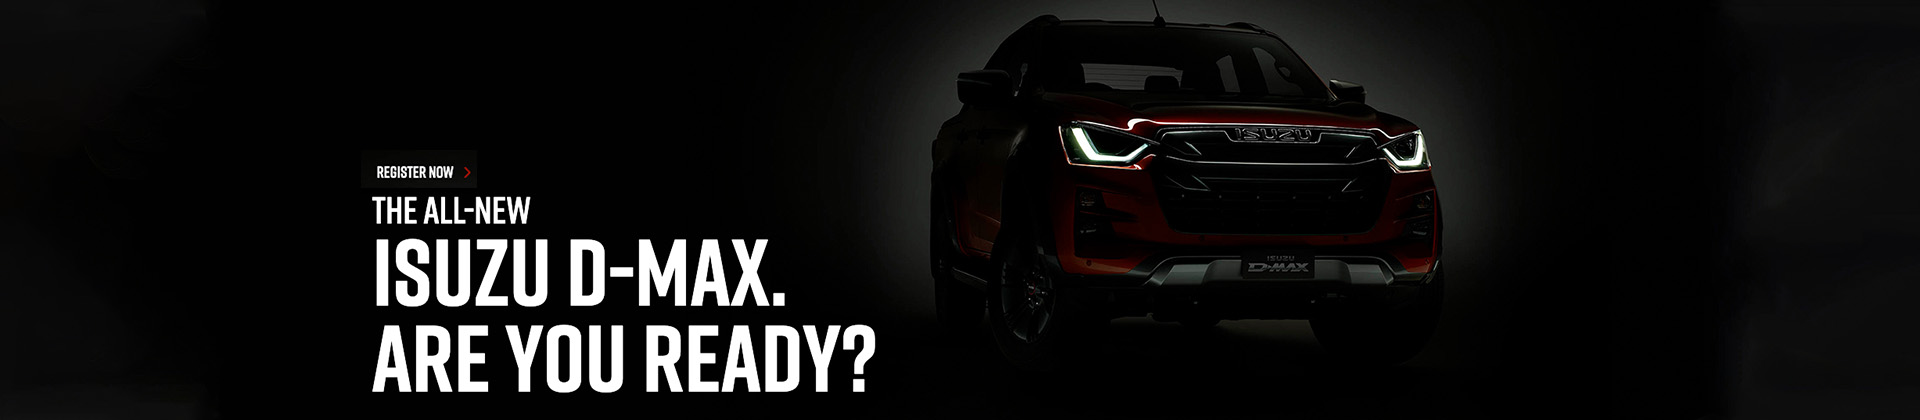 The All-New Isuzu D-MAX, are you ready? Register now